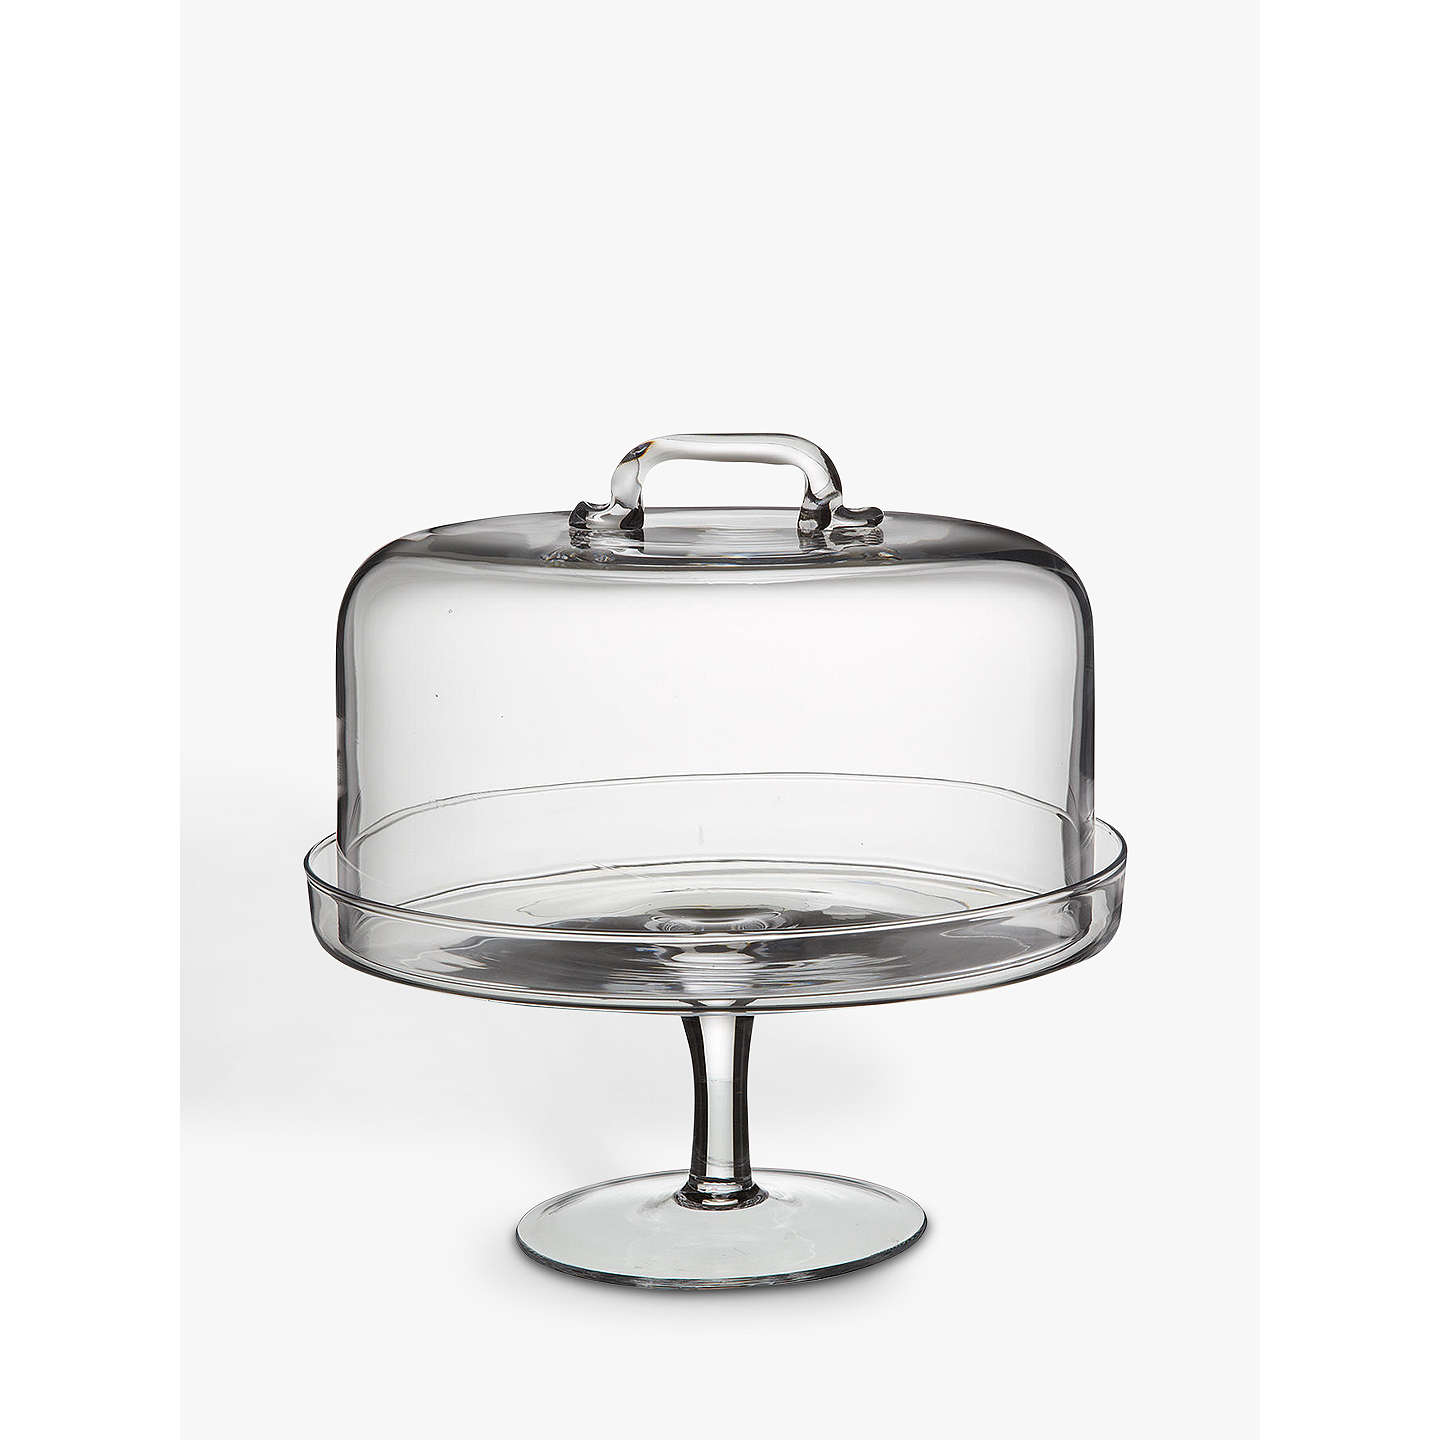 Lsa International Serve Cake Stand And Dome, Dia.26.5cm by Lsa International